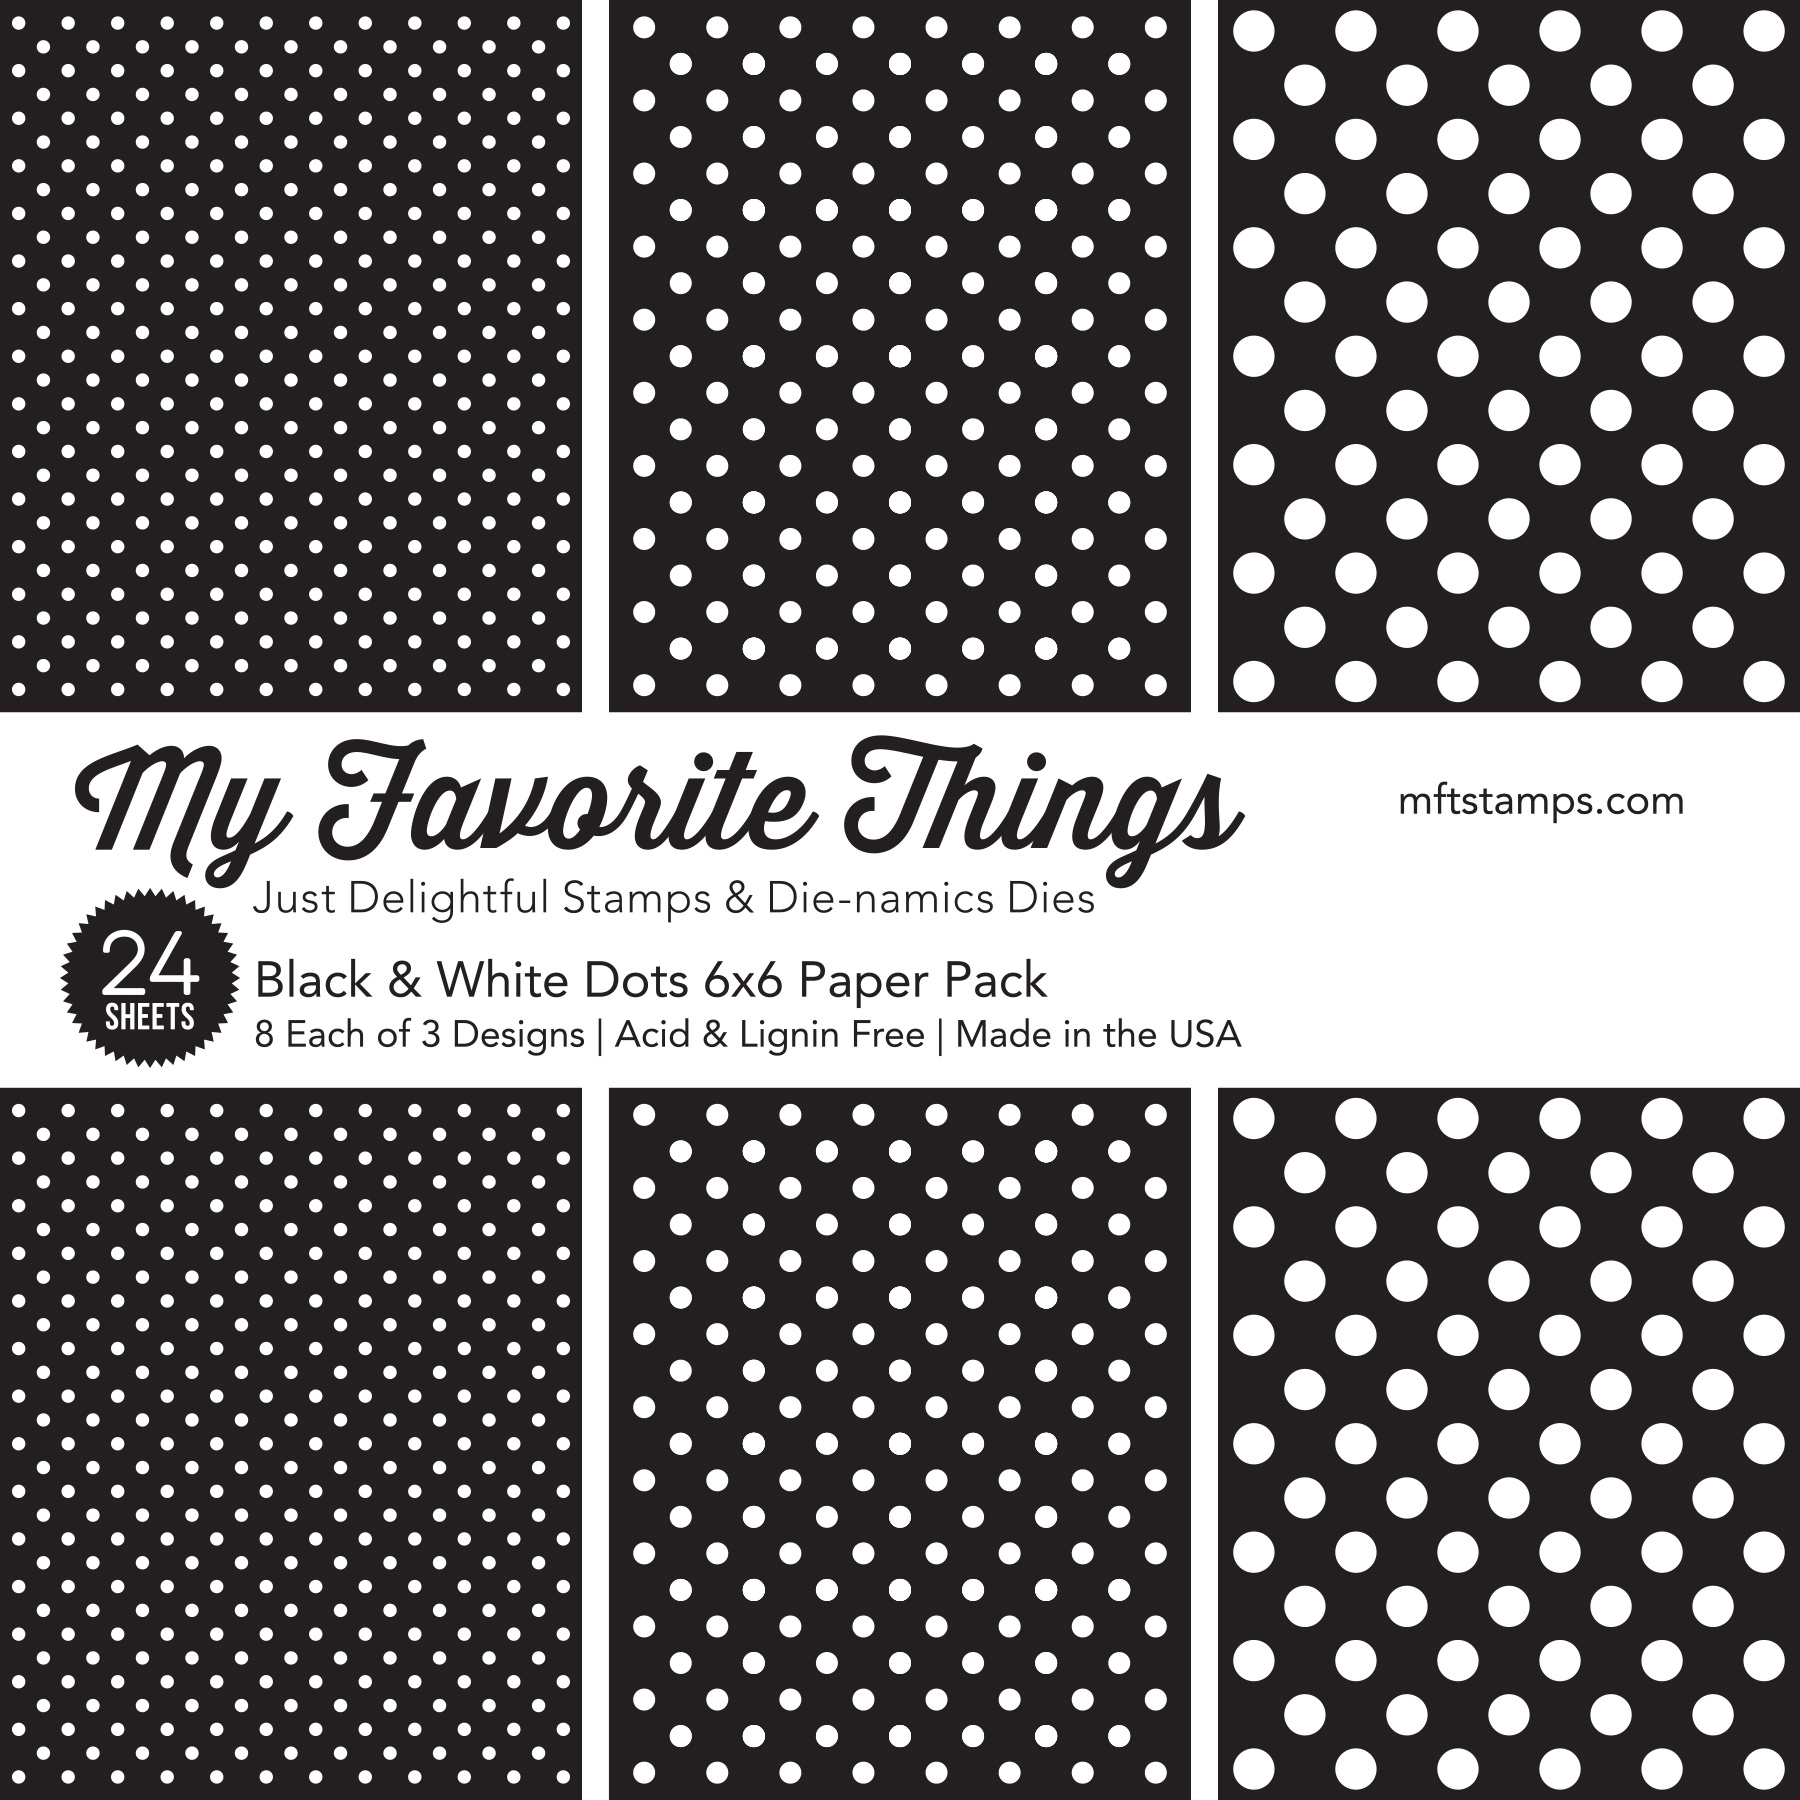 6X6 Paper Pad, Black & White Dots